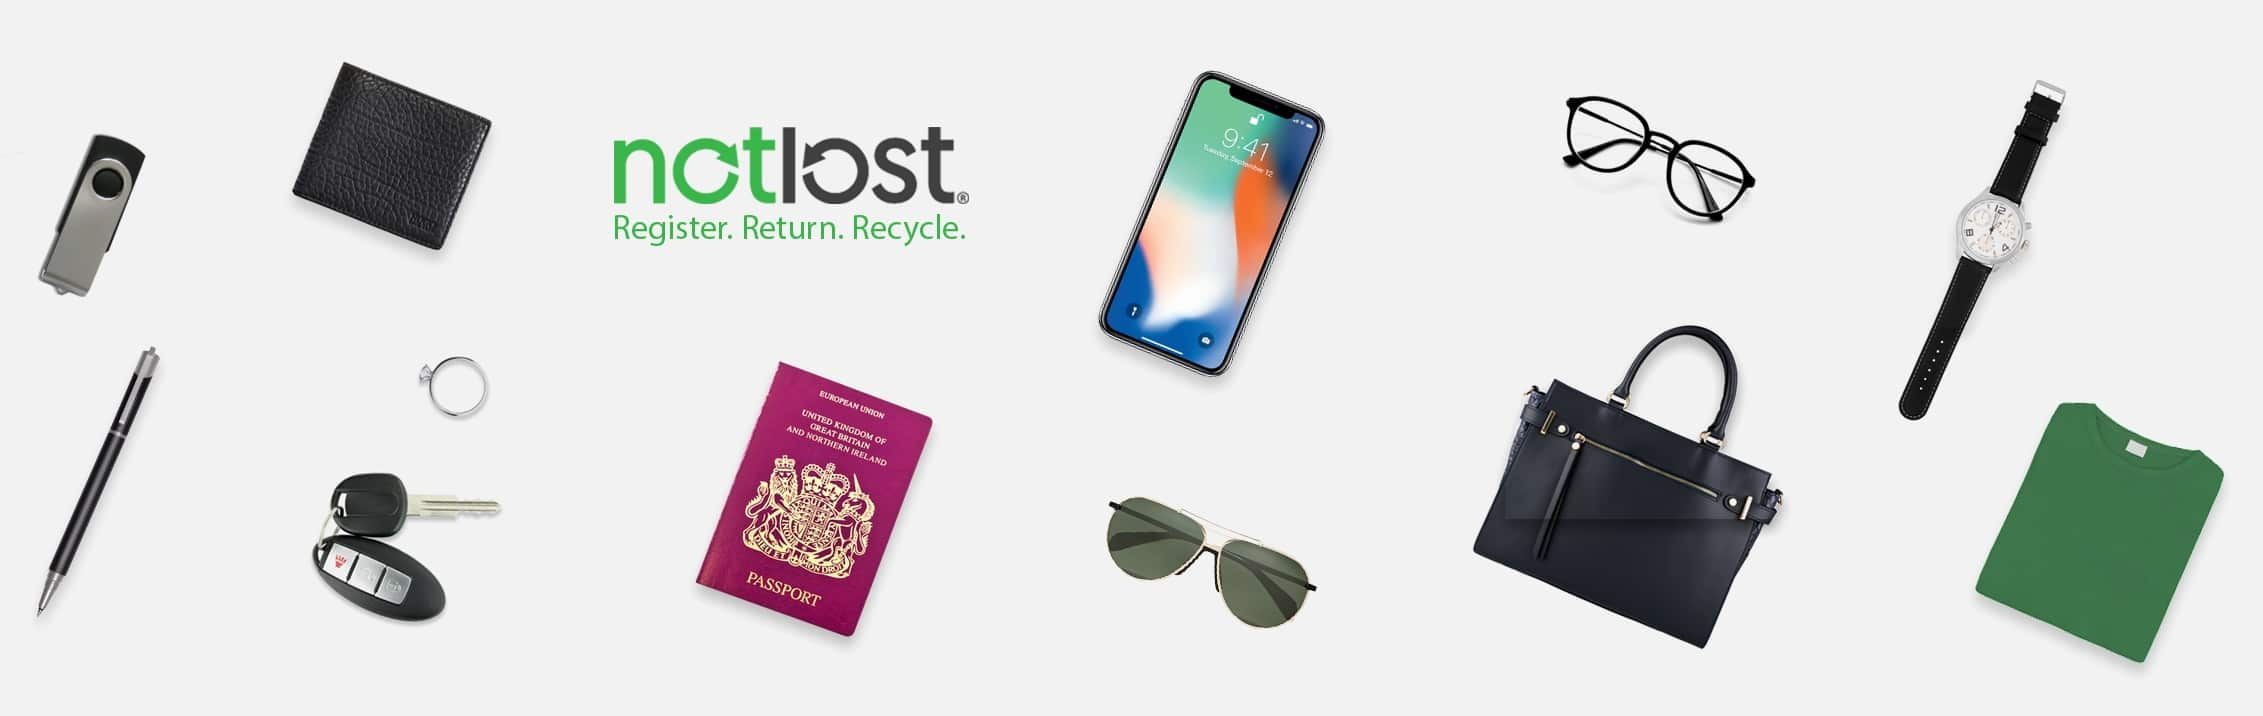 Various items of lost property including a lost passport, lost iPhone, lost glasses, lost keys, lost handbag and lost wallet.